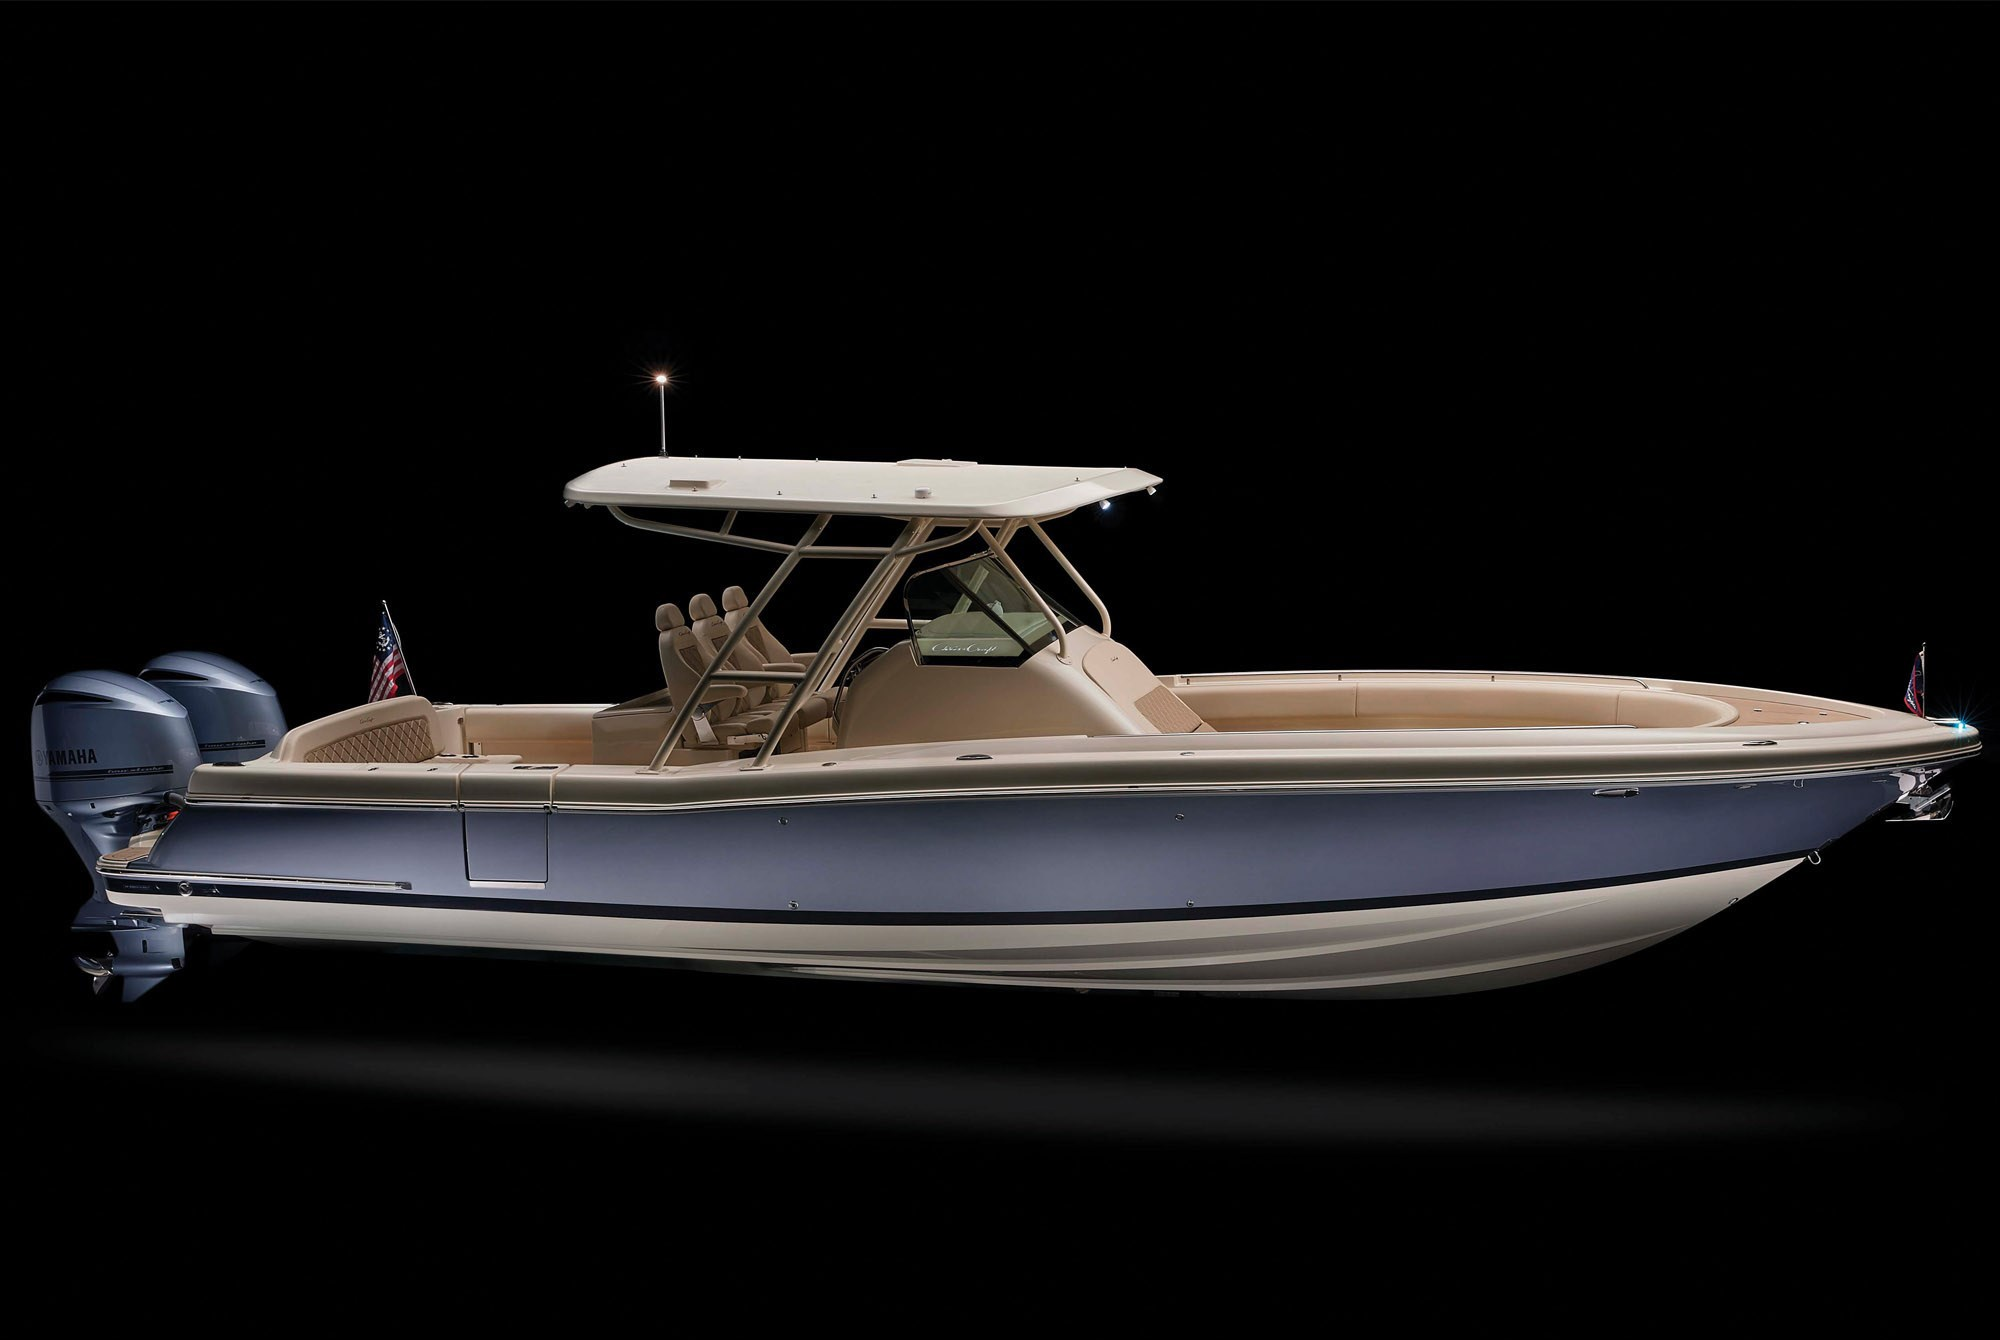 catalina 34 pilothouse, center console boat, fishing boat, outboard boat